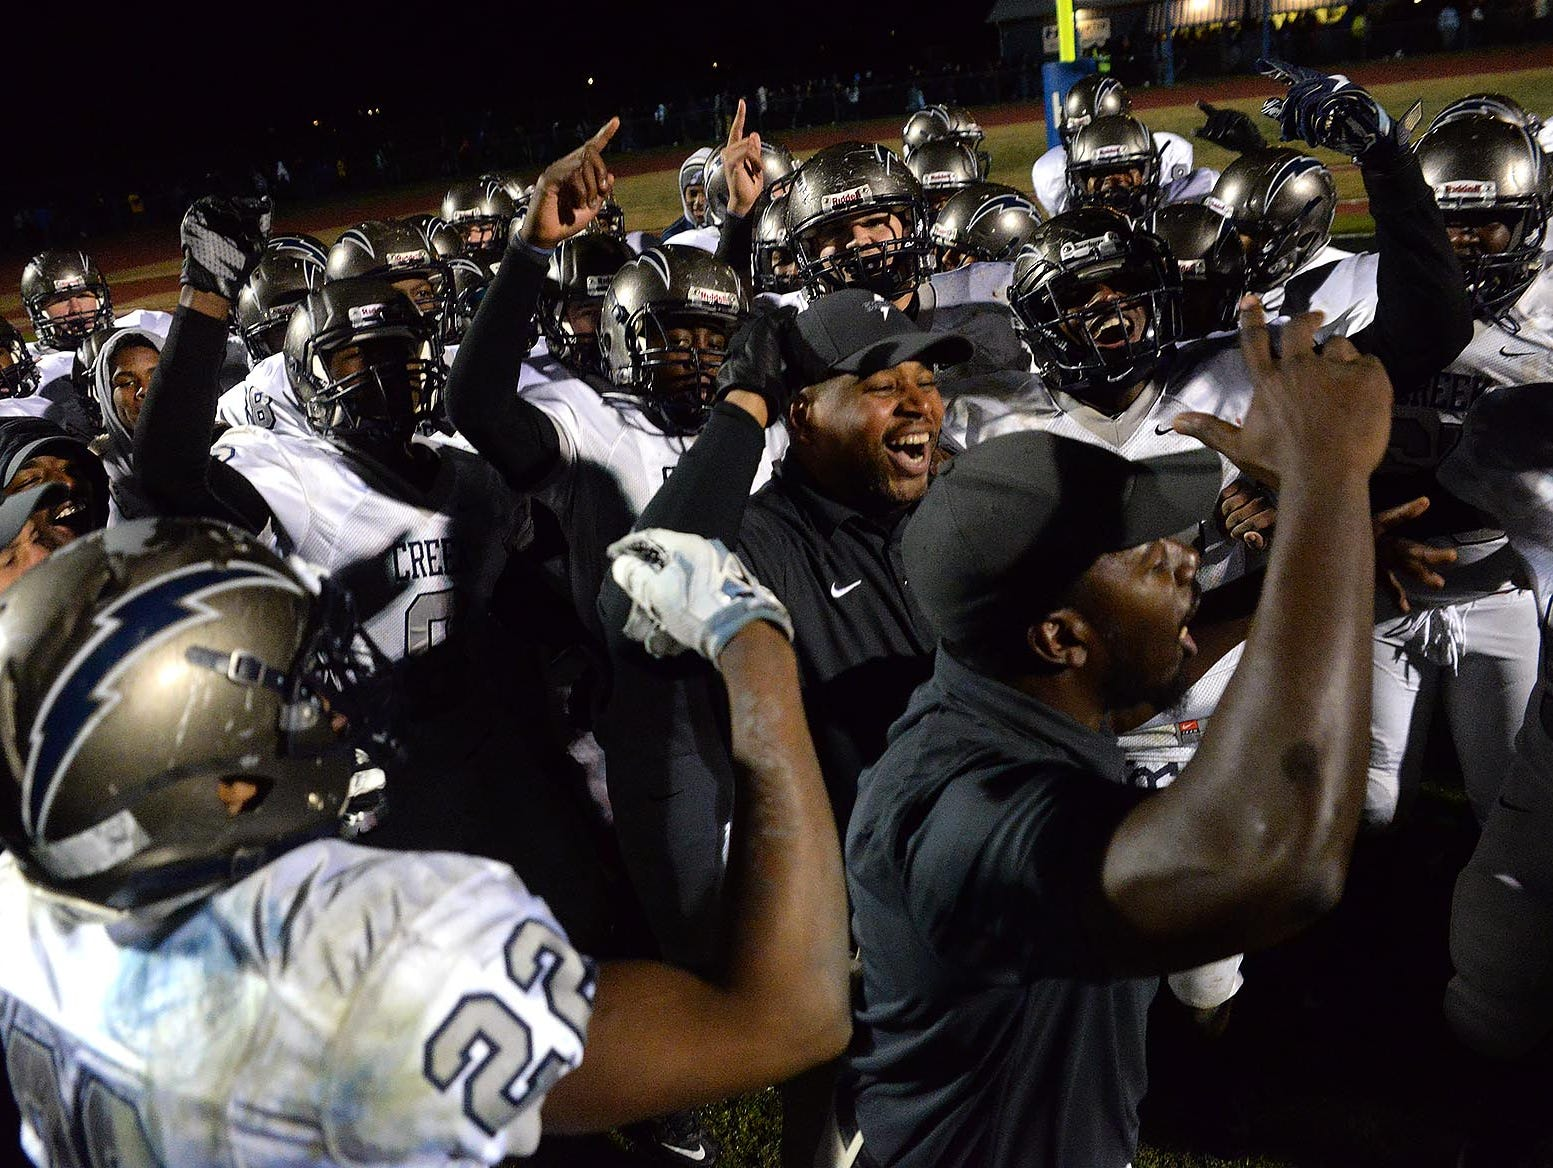 Timber Creek celebrates after defeating Hammonton in the sectional semifinals.